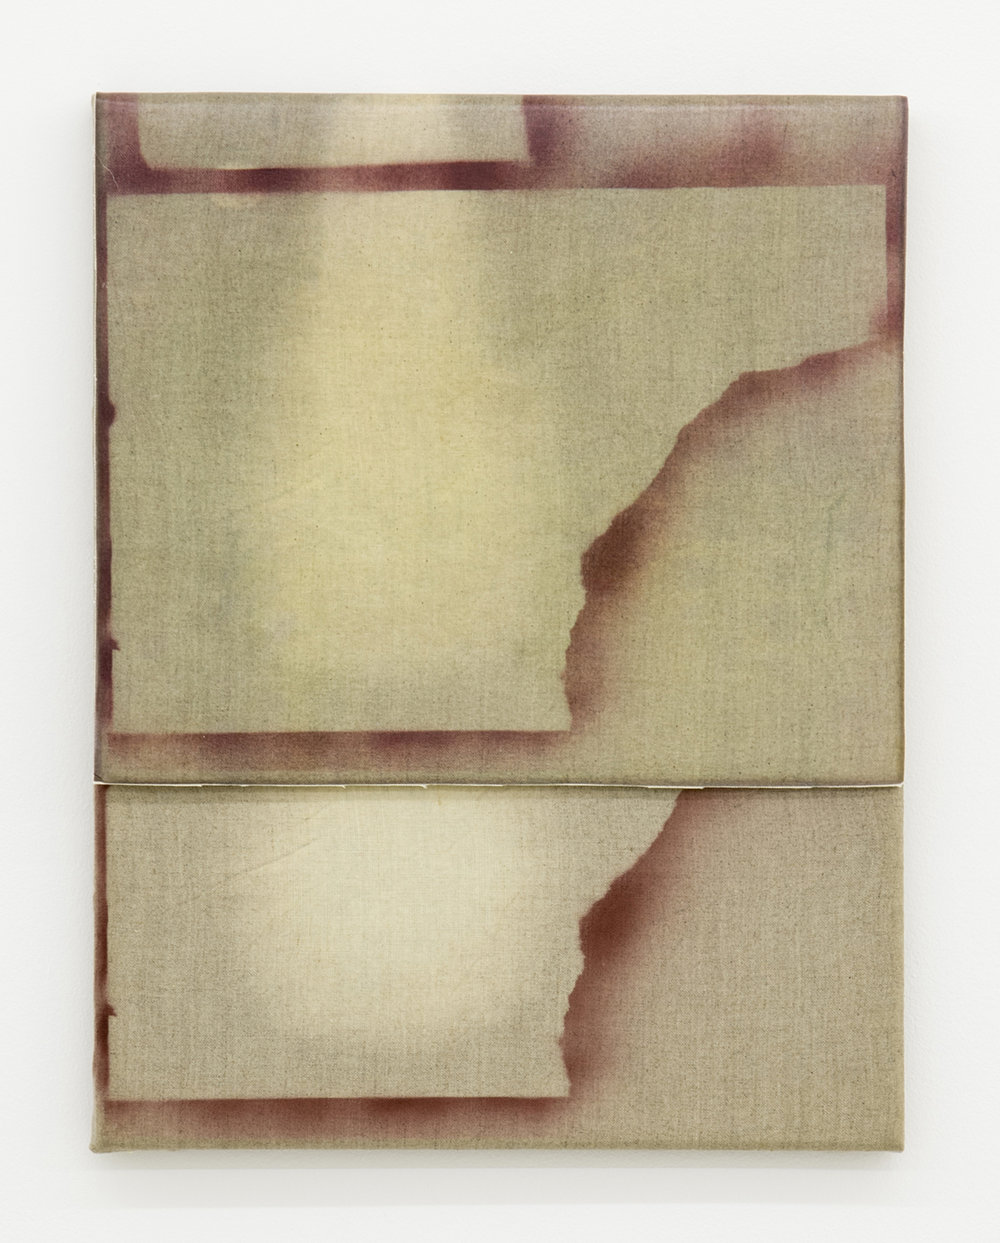 Aimée Parrott,  Overlap (part 1) , 2014, Bleach and ink on linen, 35 x 25 cm